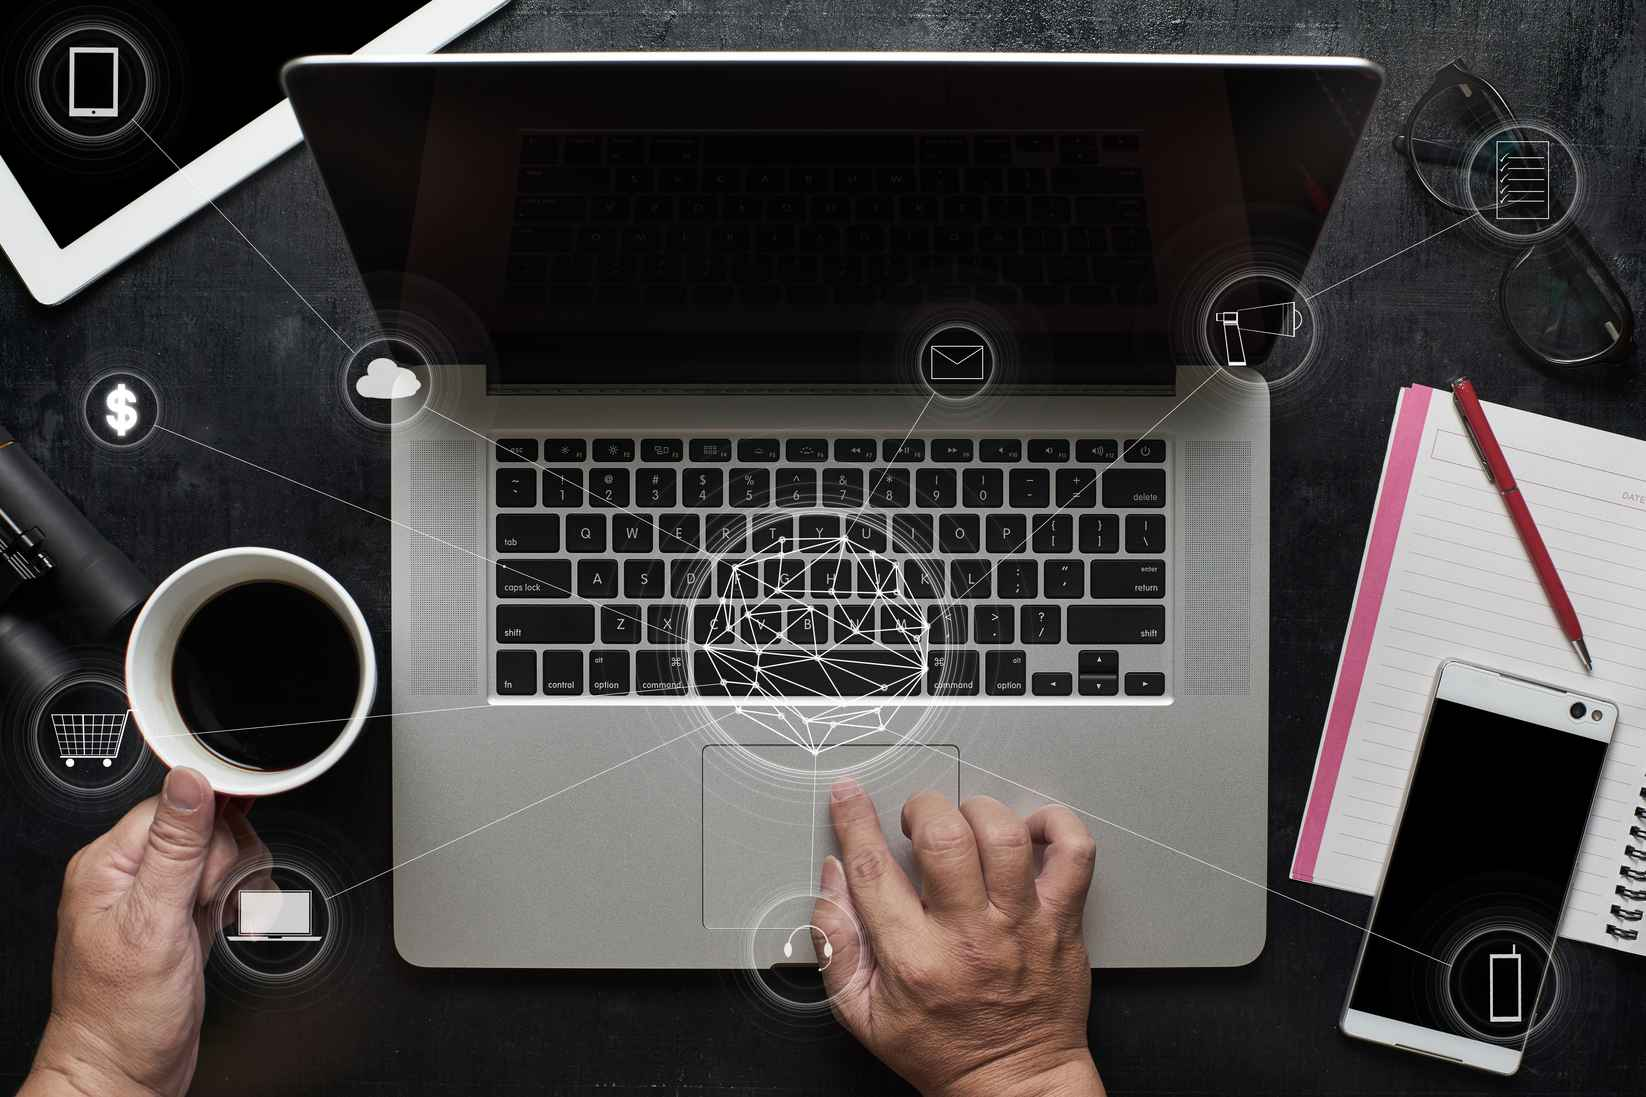 graphicstock-man-using-laptop-make-payments-online-shopping-and-icon-customer-network-connection-on-screenwooden-black-office-desk-table-on-top-view_BurlqPjwgol